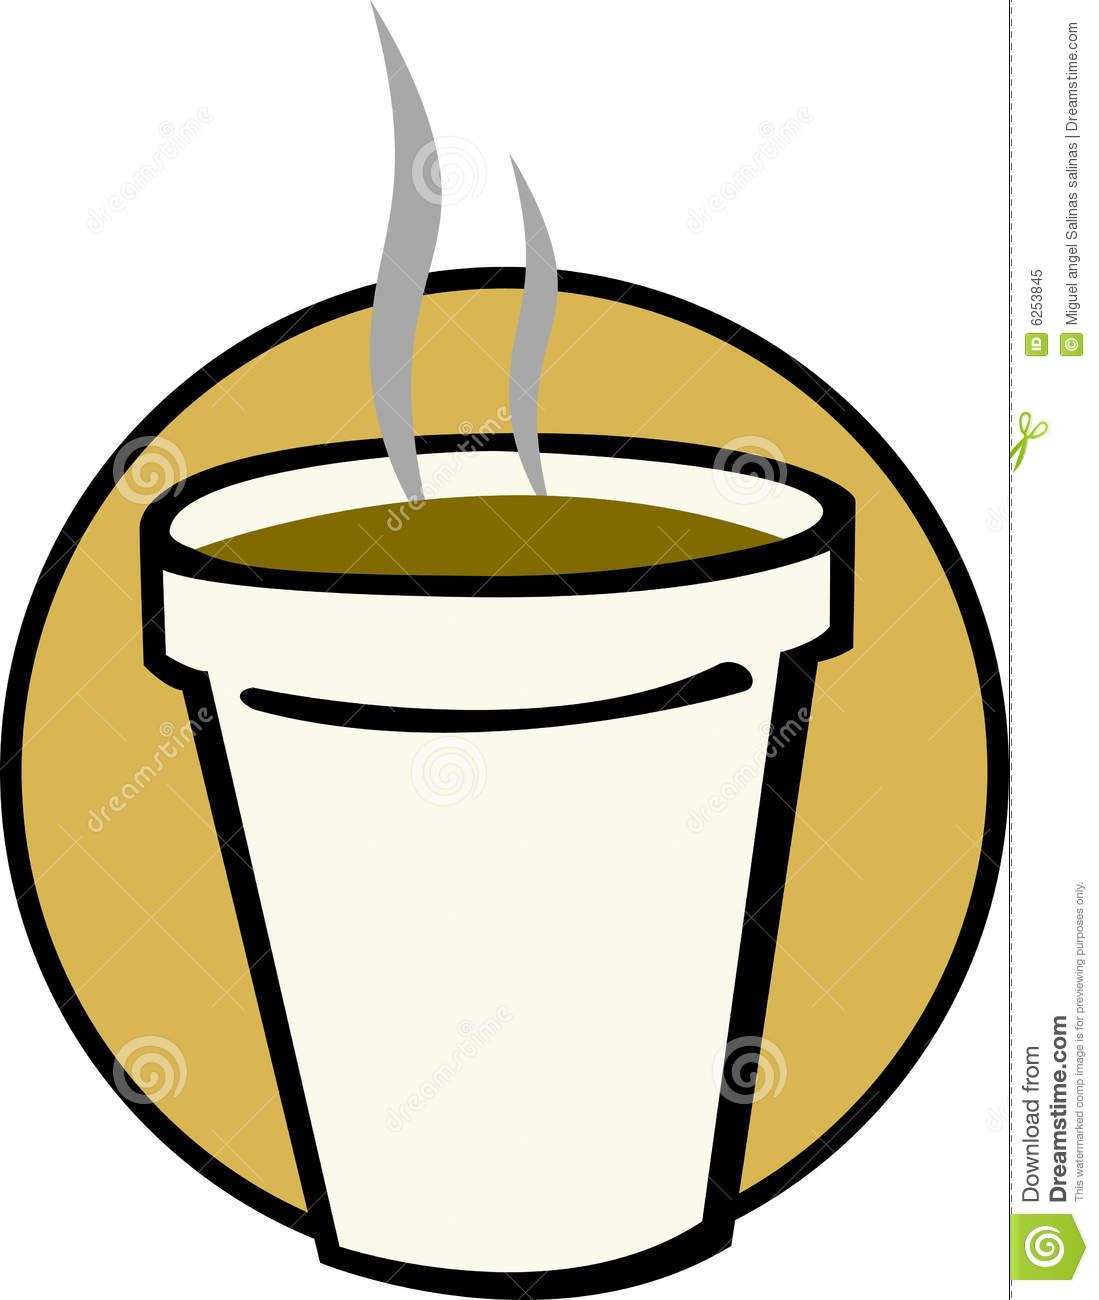 Coffee cup vector free - Hot Coffee In Styrofoam Cup Vector Illustration Royalty Free Stock